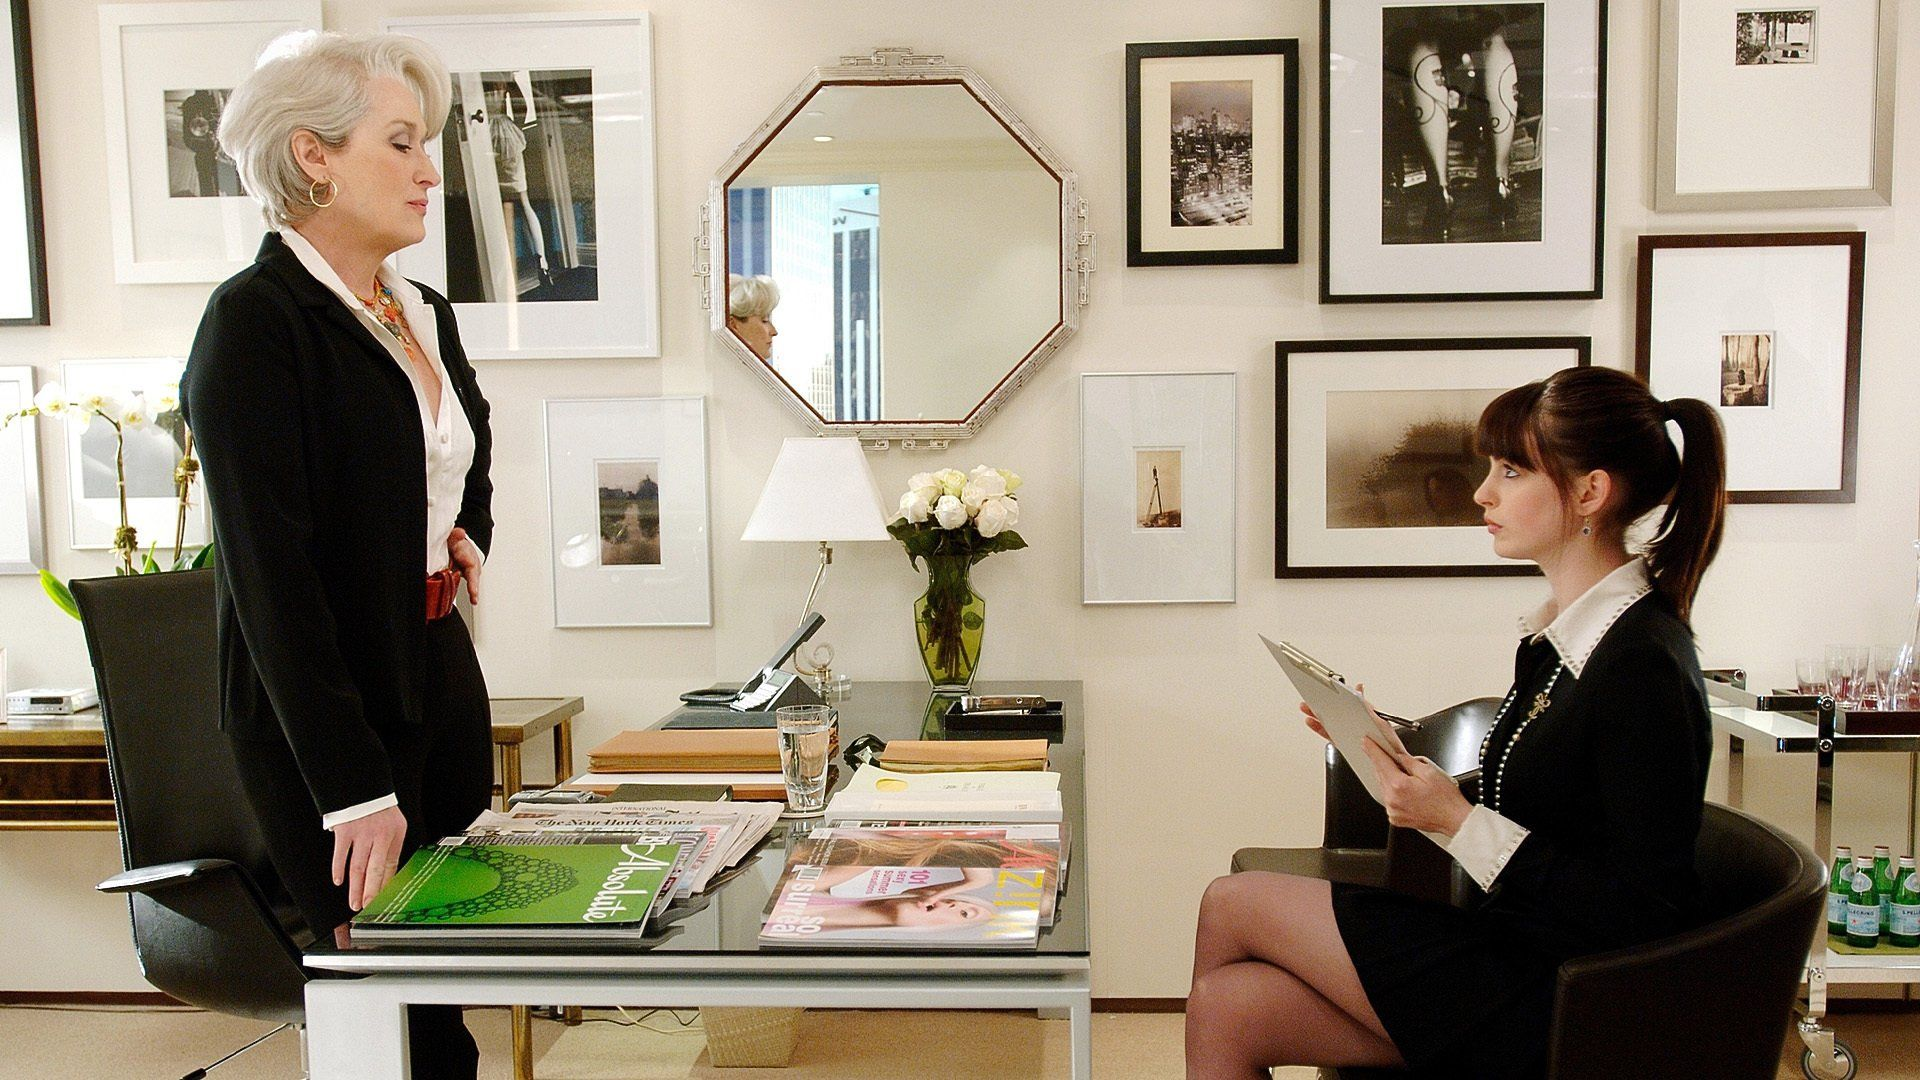 4. The Devil Wears Prada